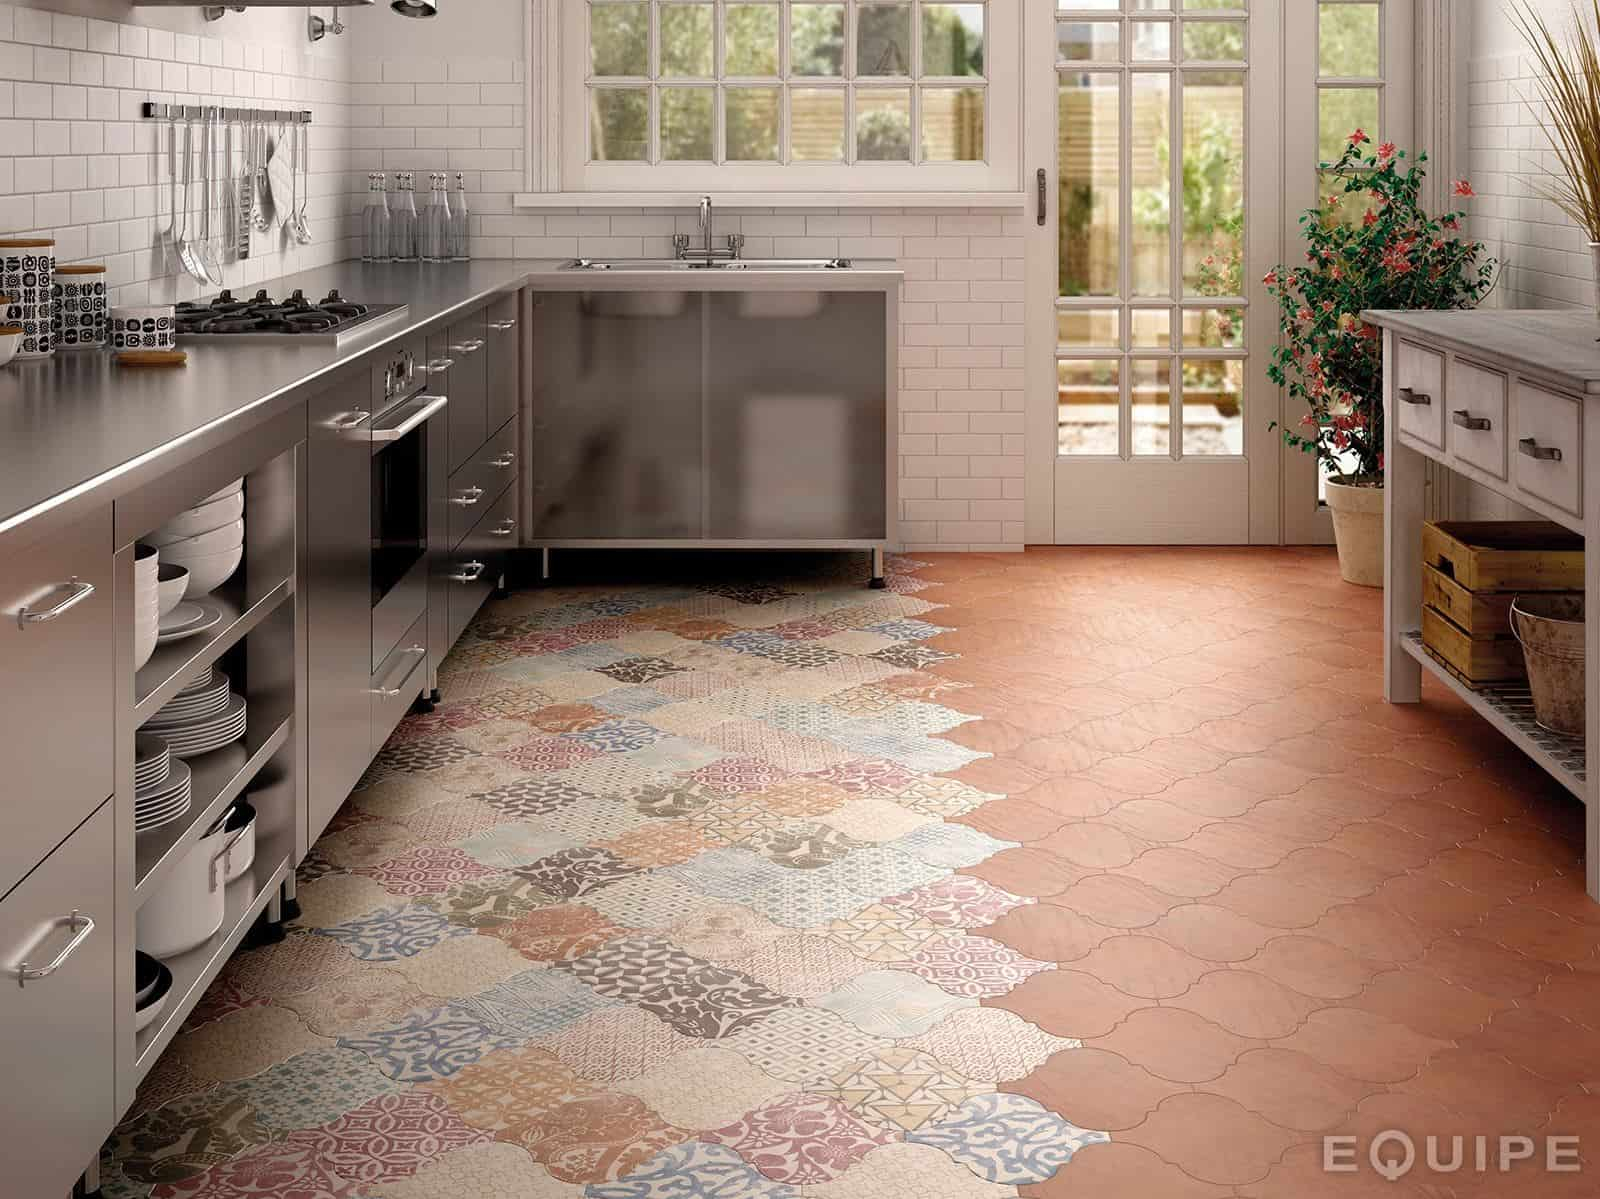 21 arabesque tile ideas for floor wall and backsplash kitchen floor tile ideas View in gallery arabesque tile kitchen floor patchwork equipe 4